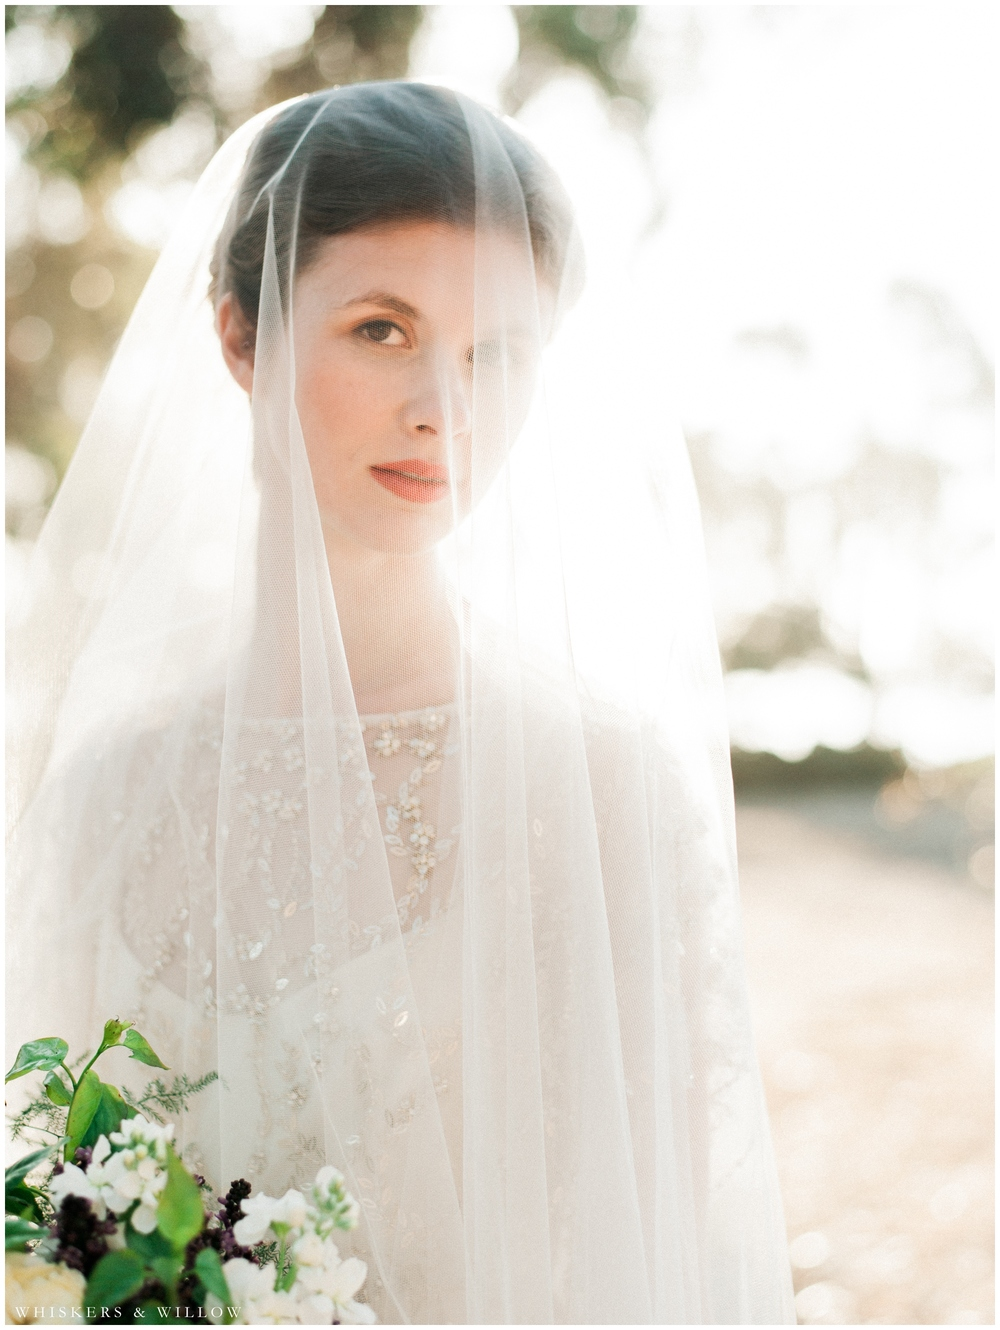 Bridal Portrait - Jenny Packham gown - San Diego Wedding Photographer - Whiskers and Willow Photography